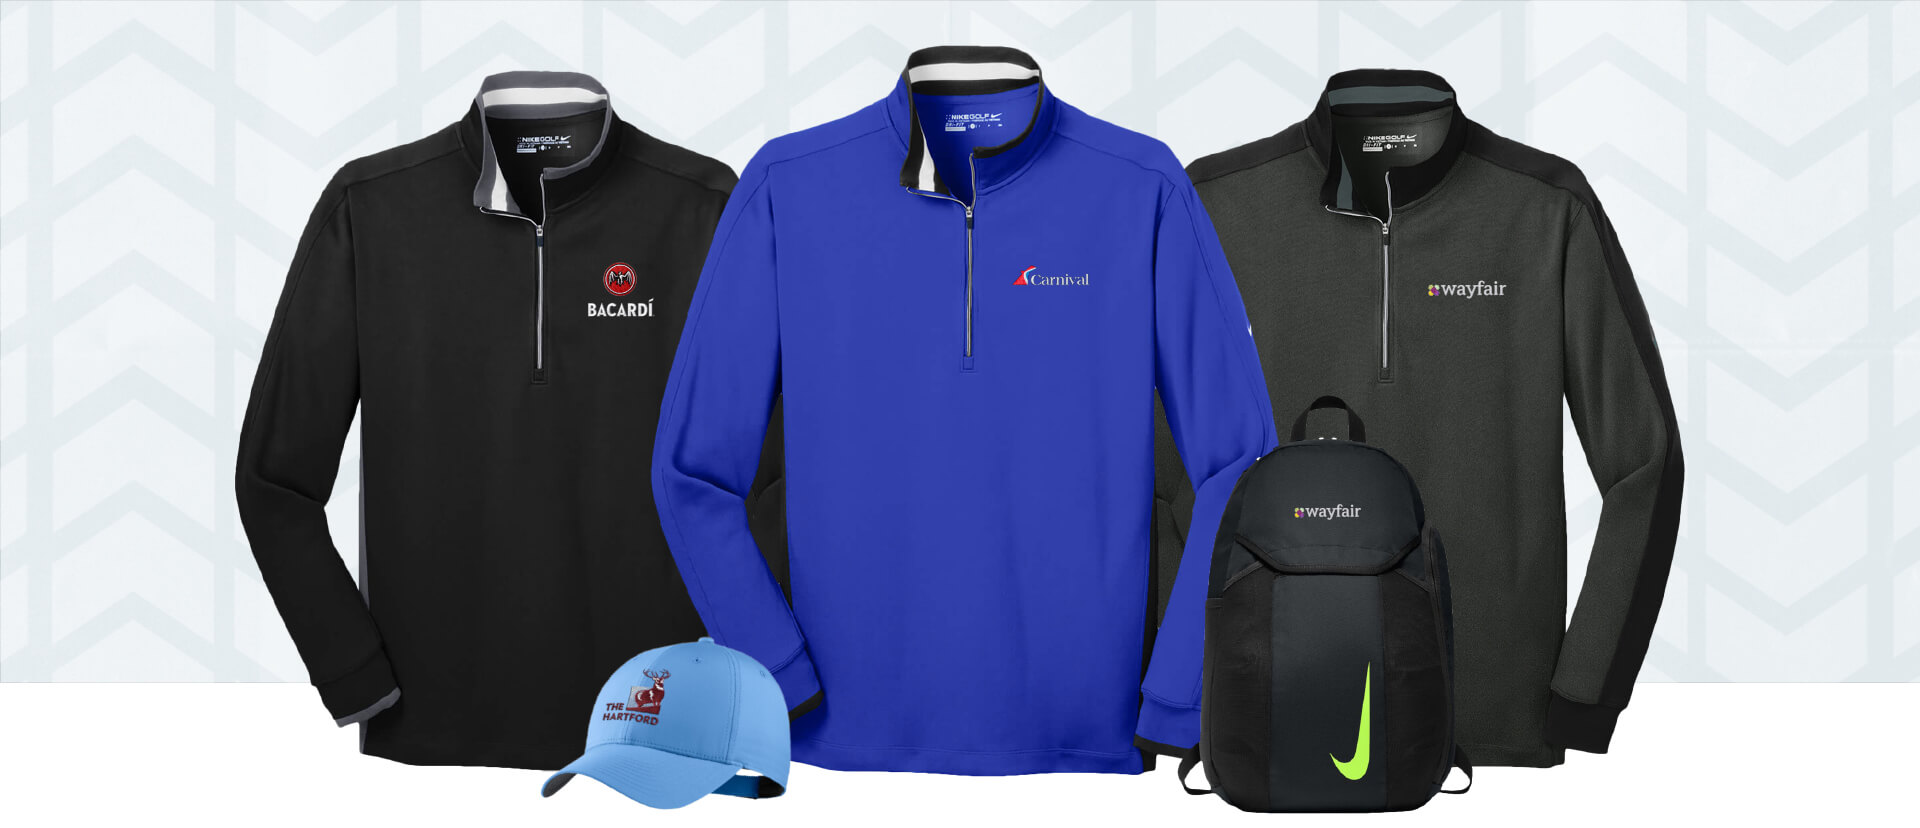 Welcome to Corporate Gear